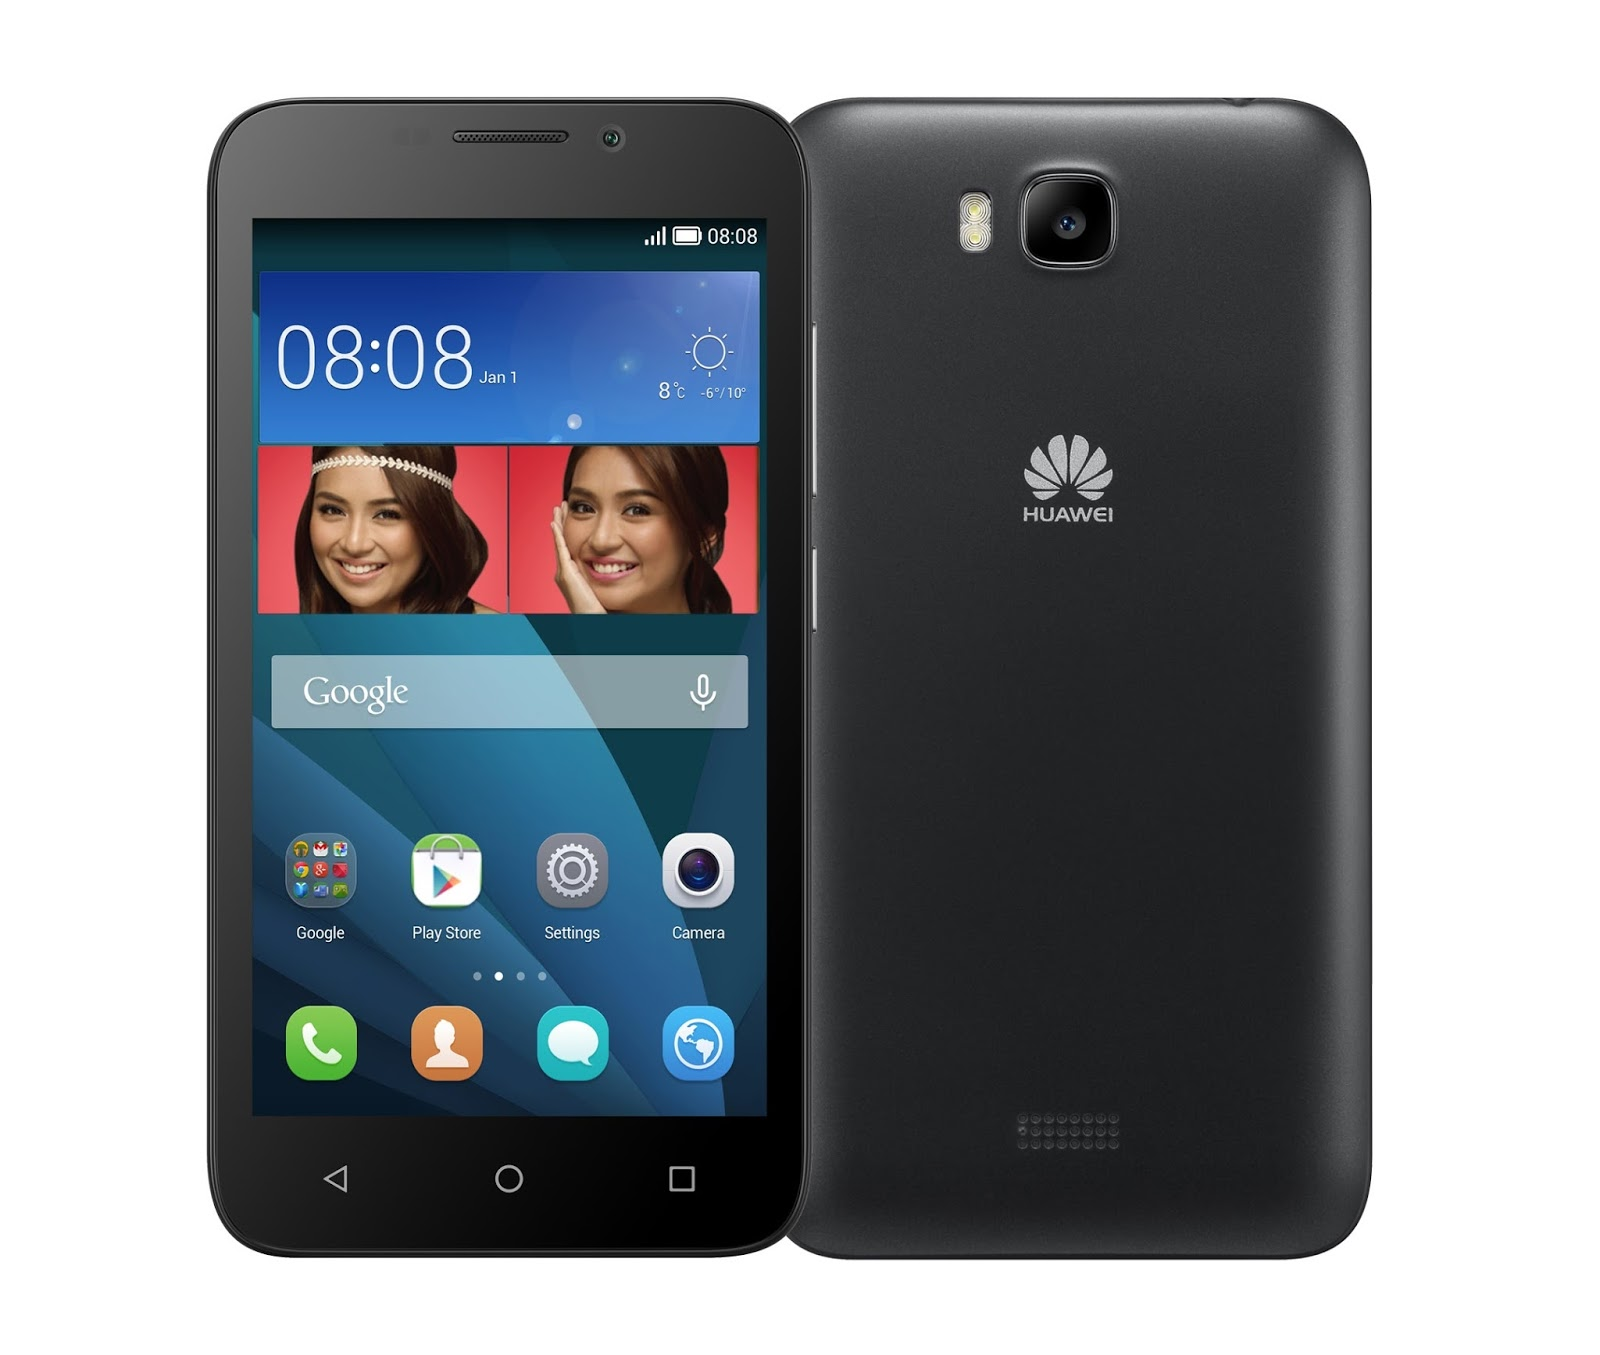 Image result for Huawei Ascend Y560-U23 Flash File Firmware